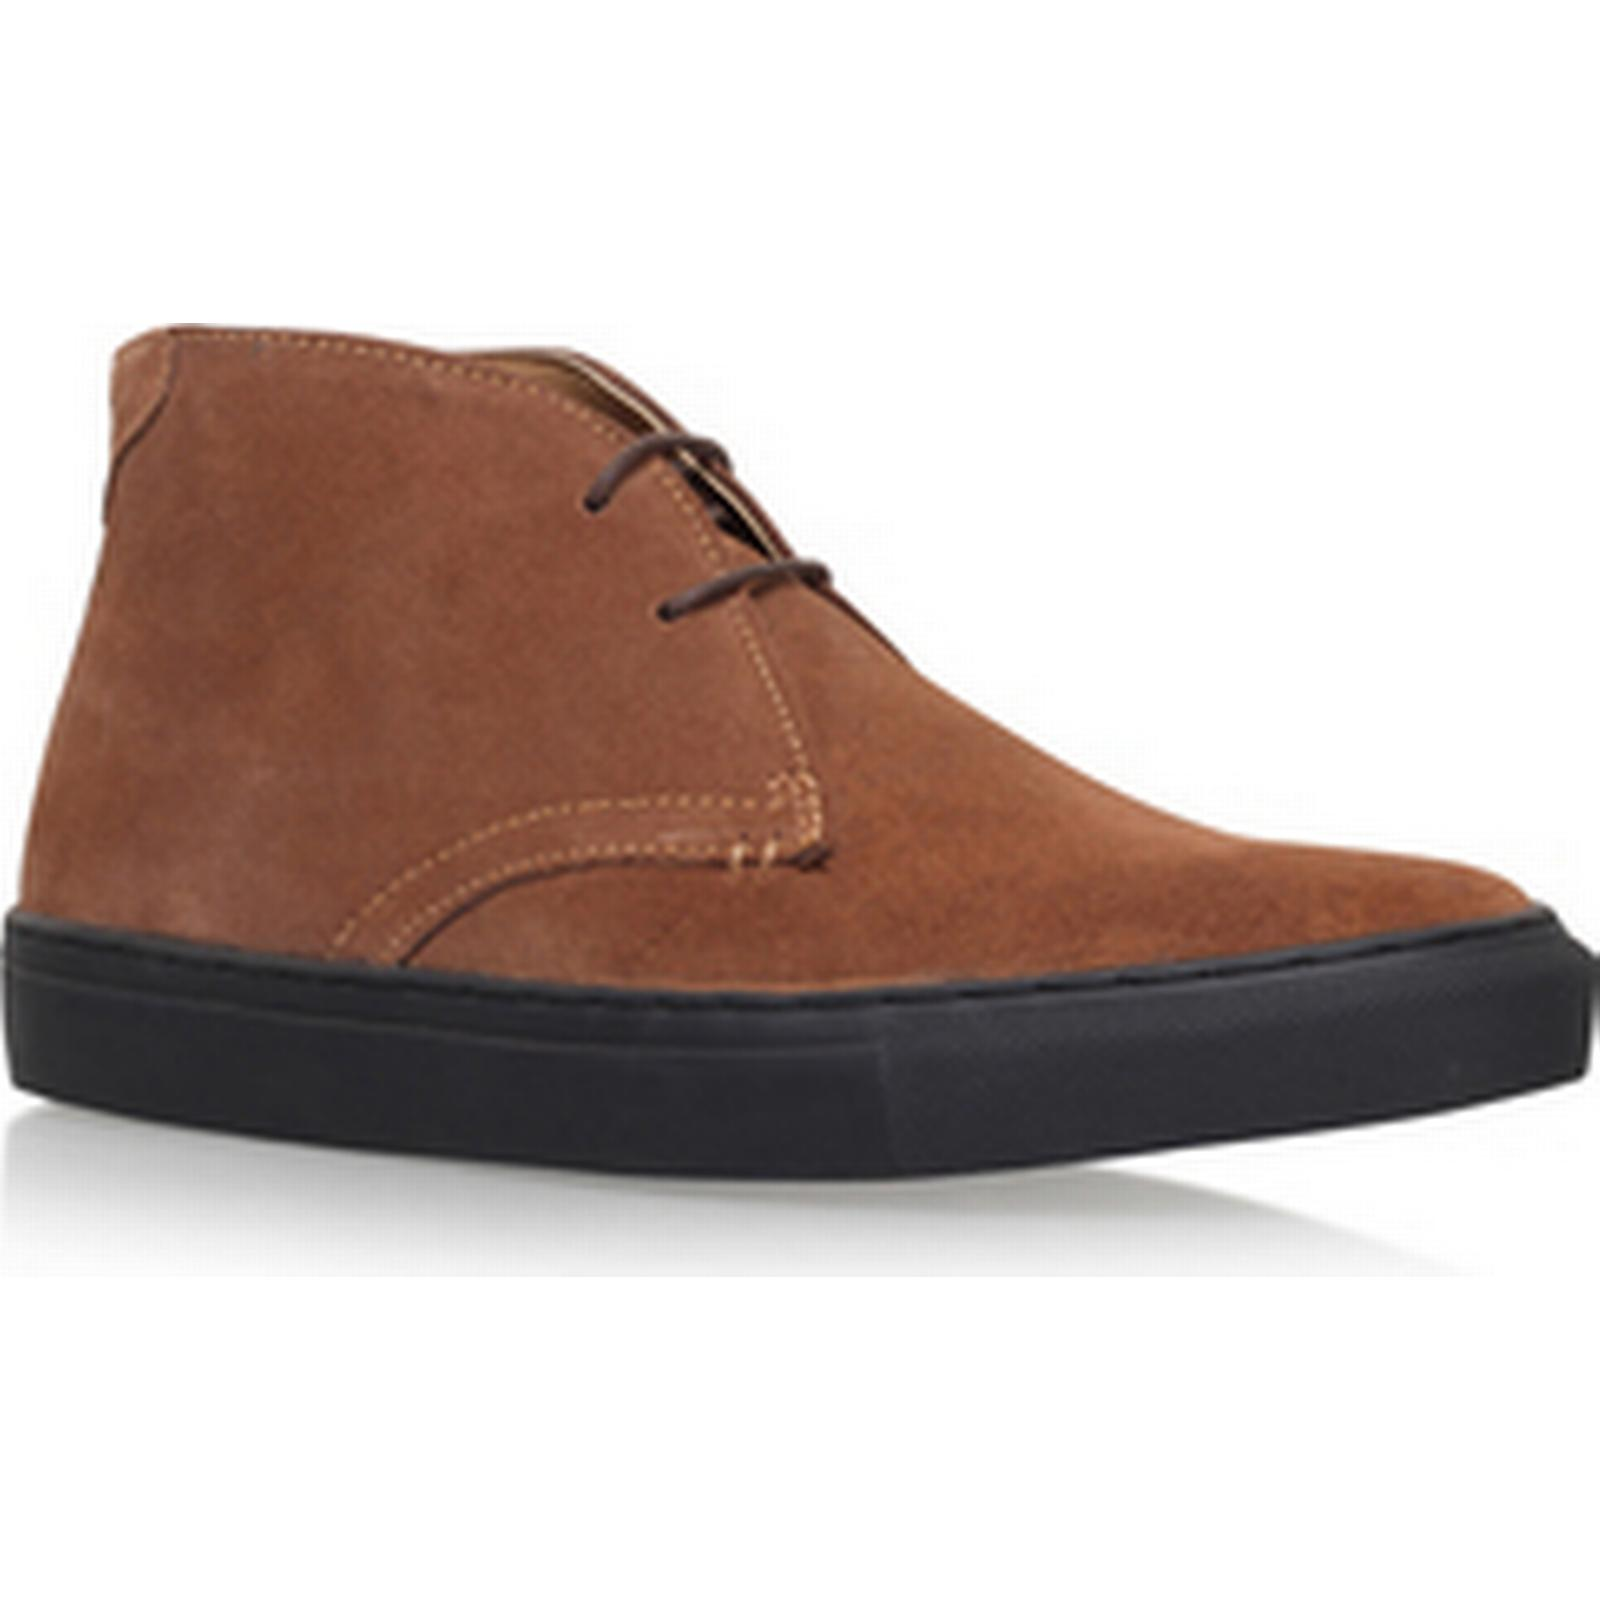 Gentlemen/Ladies - KG KURT - GEIGER GLASGOW - KURT elegance 8251b4